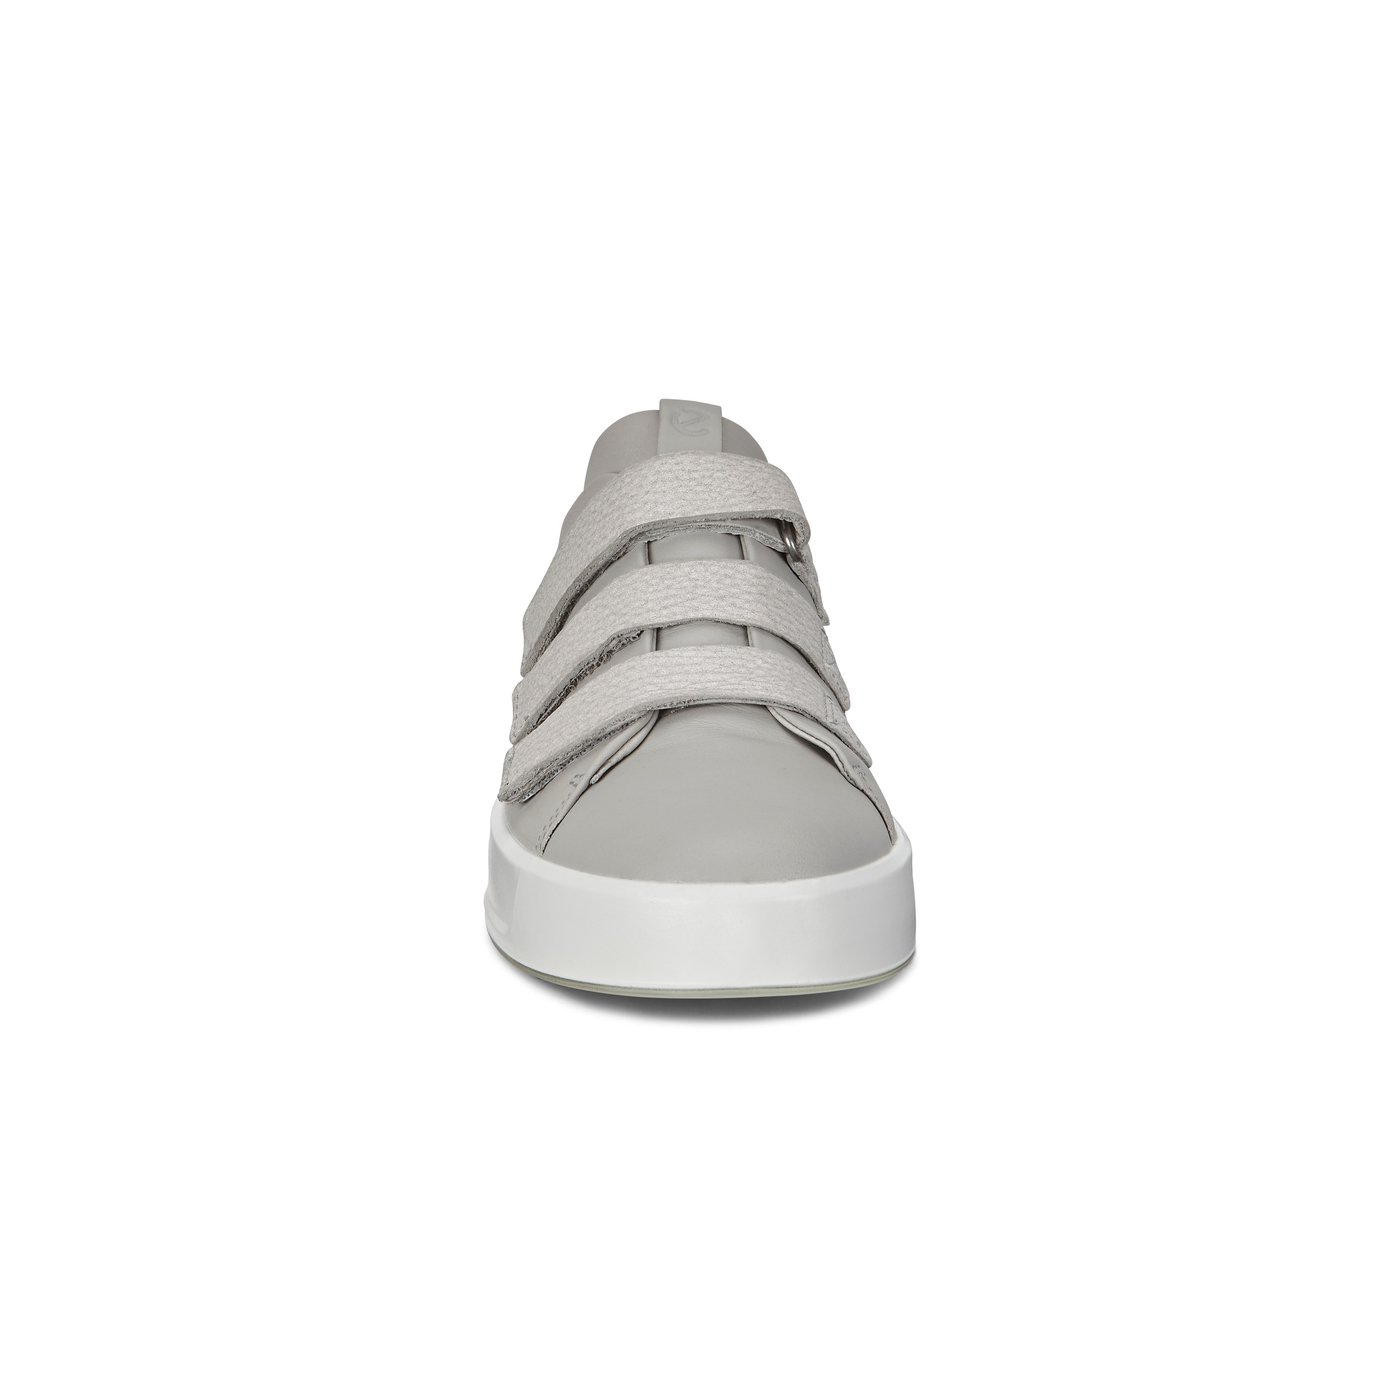 ECCO Womens Soft 8 3 Strap